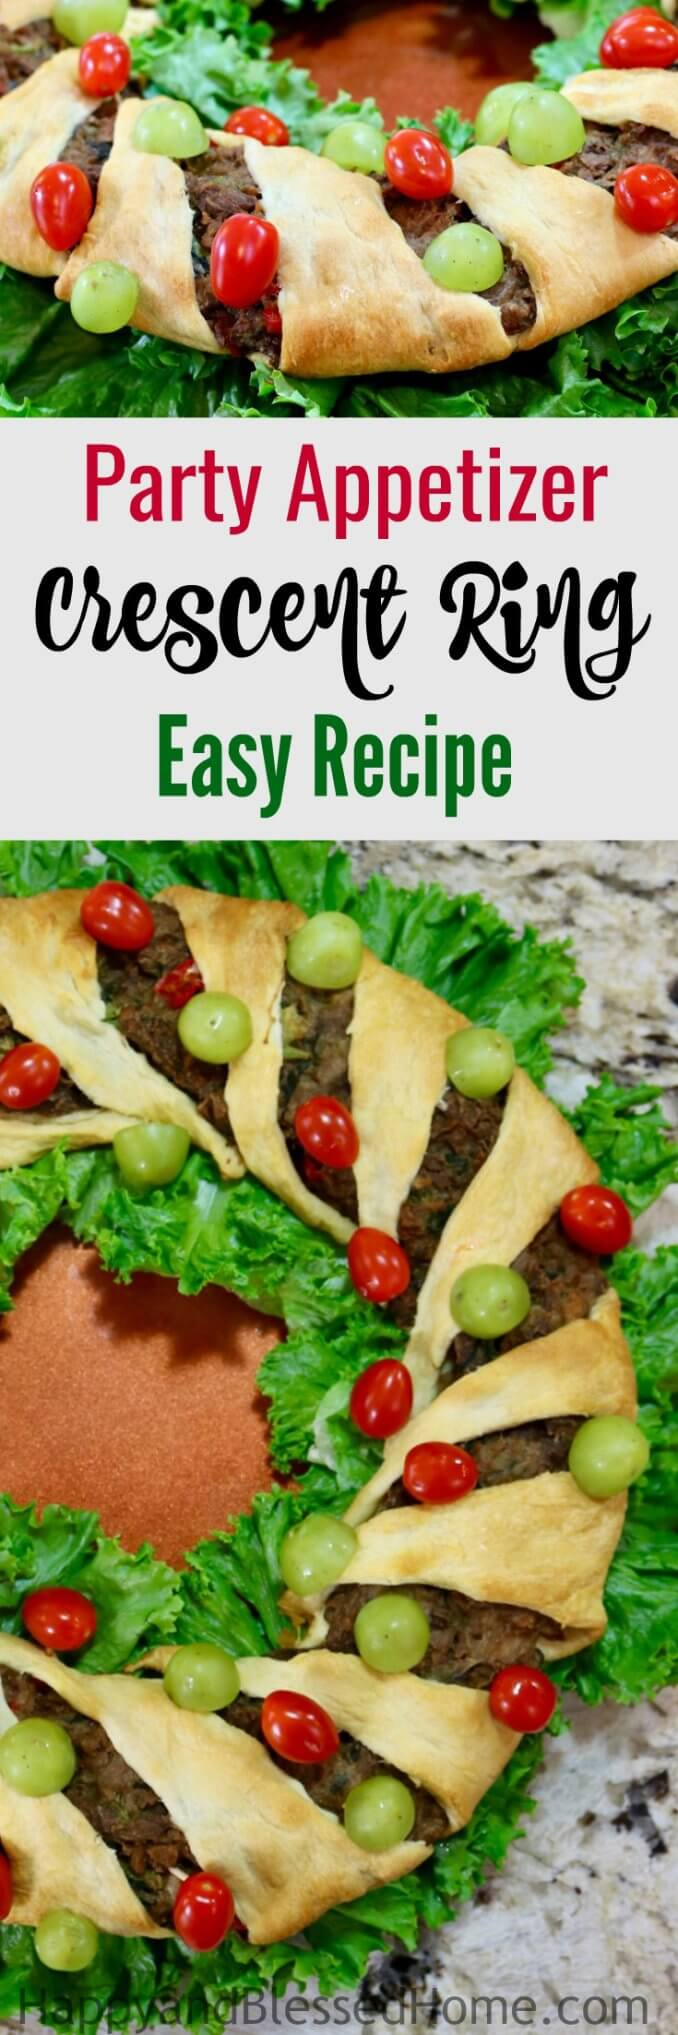 Party Appetizer Crescent Ring Easy Recipe